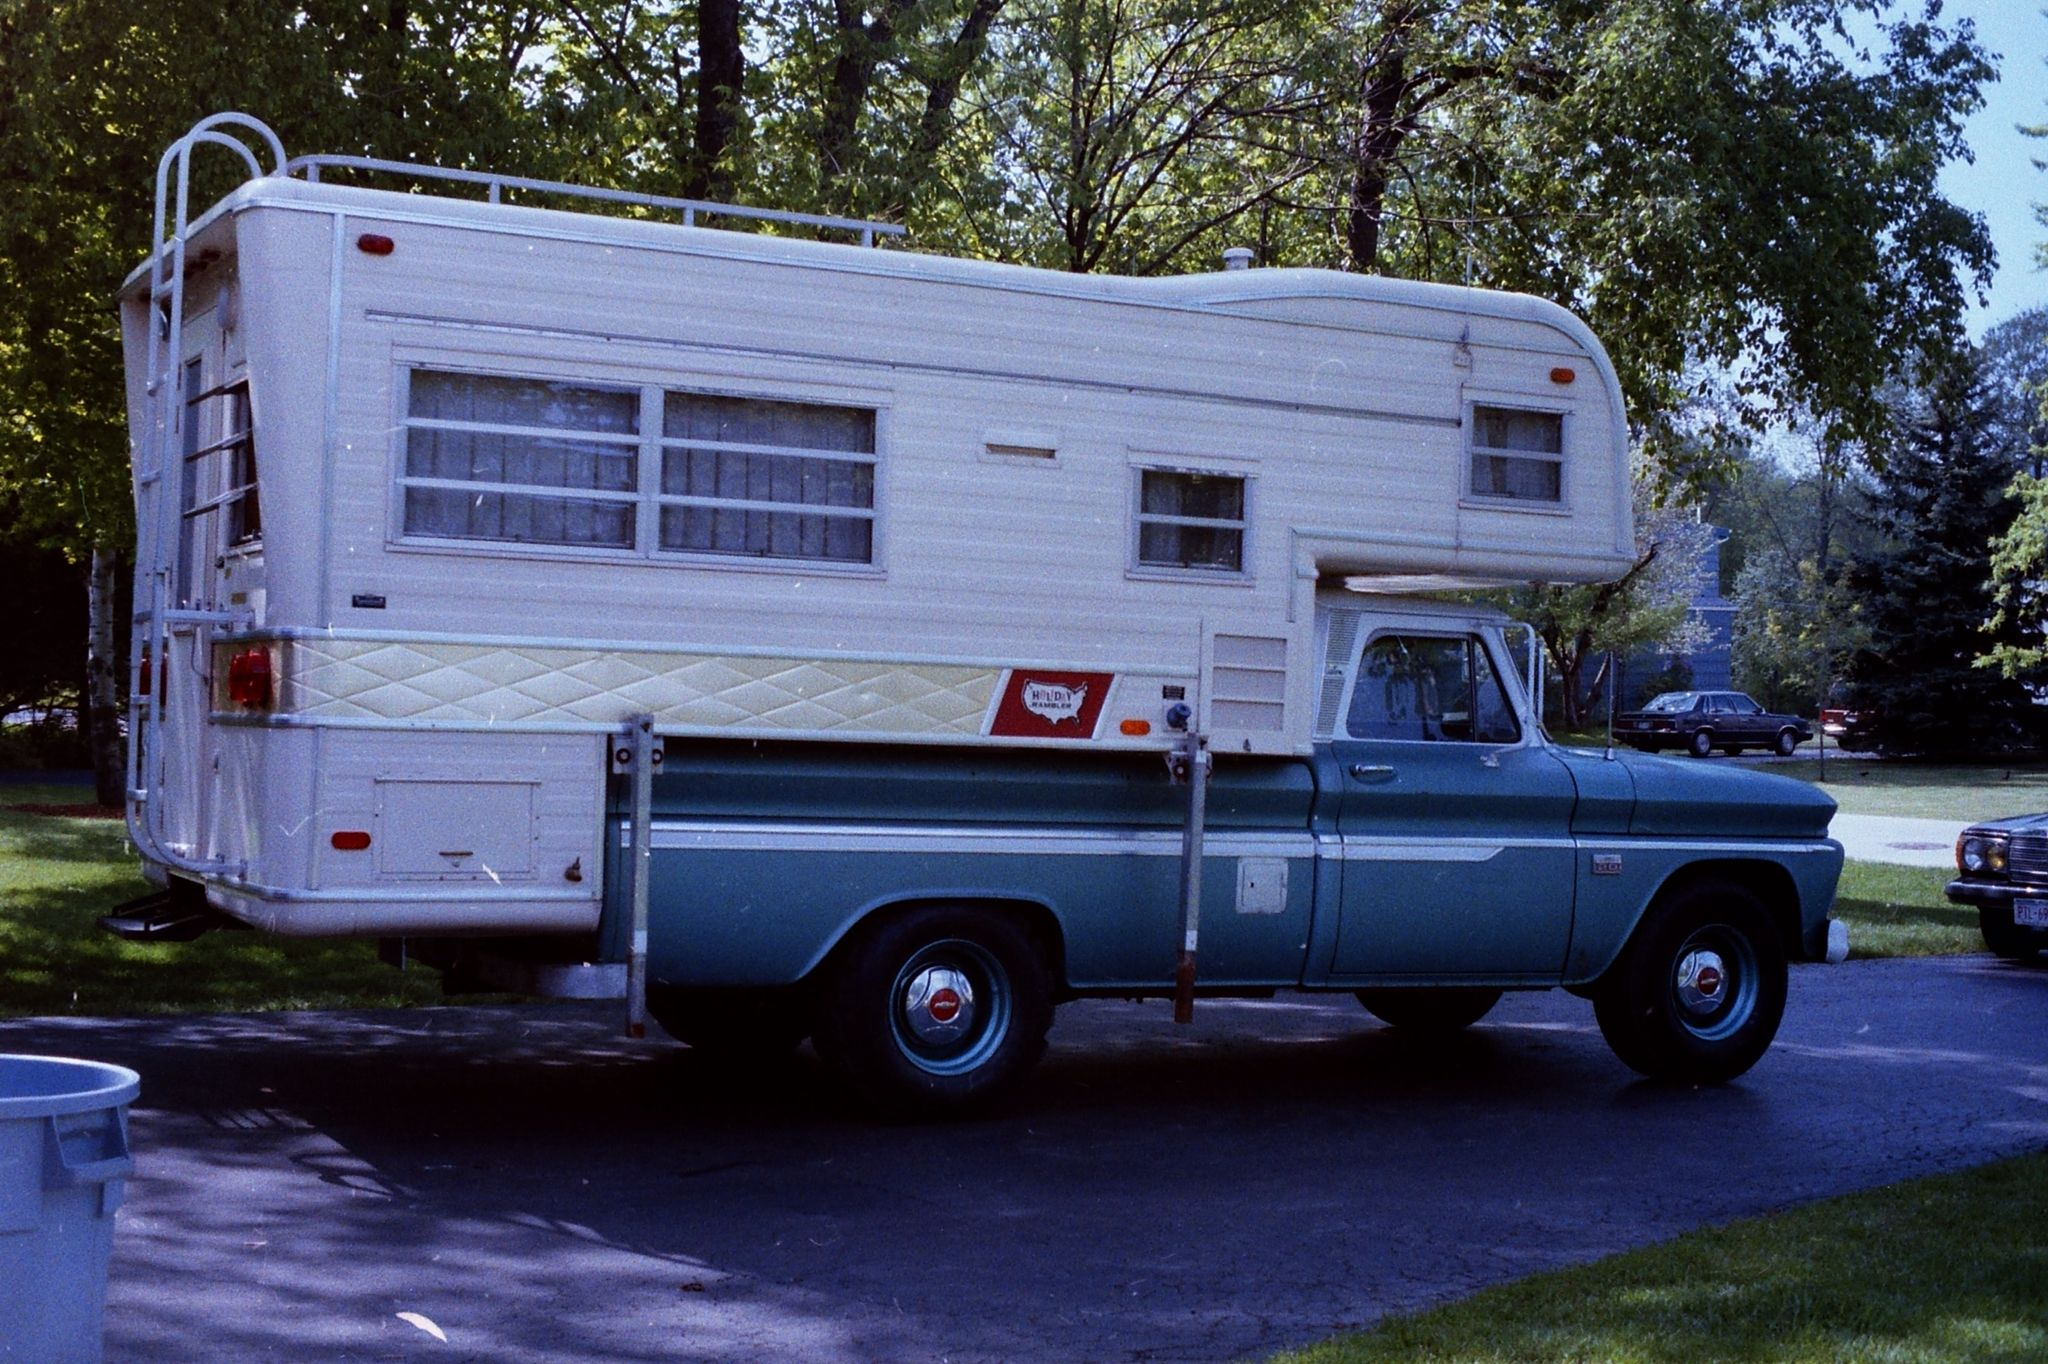 Check out my 1966 C-20 Chevy and 1969 Holiday Rambler